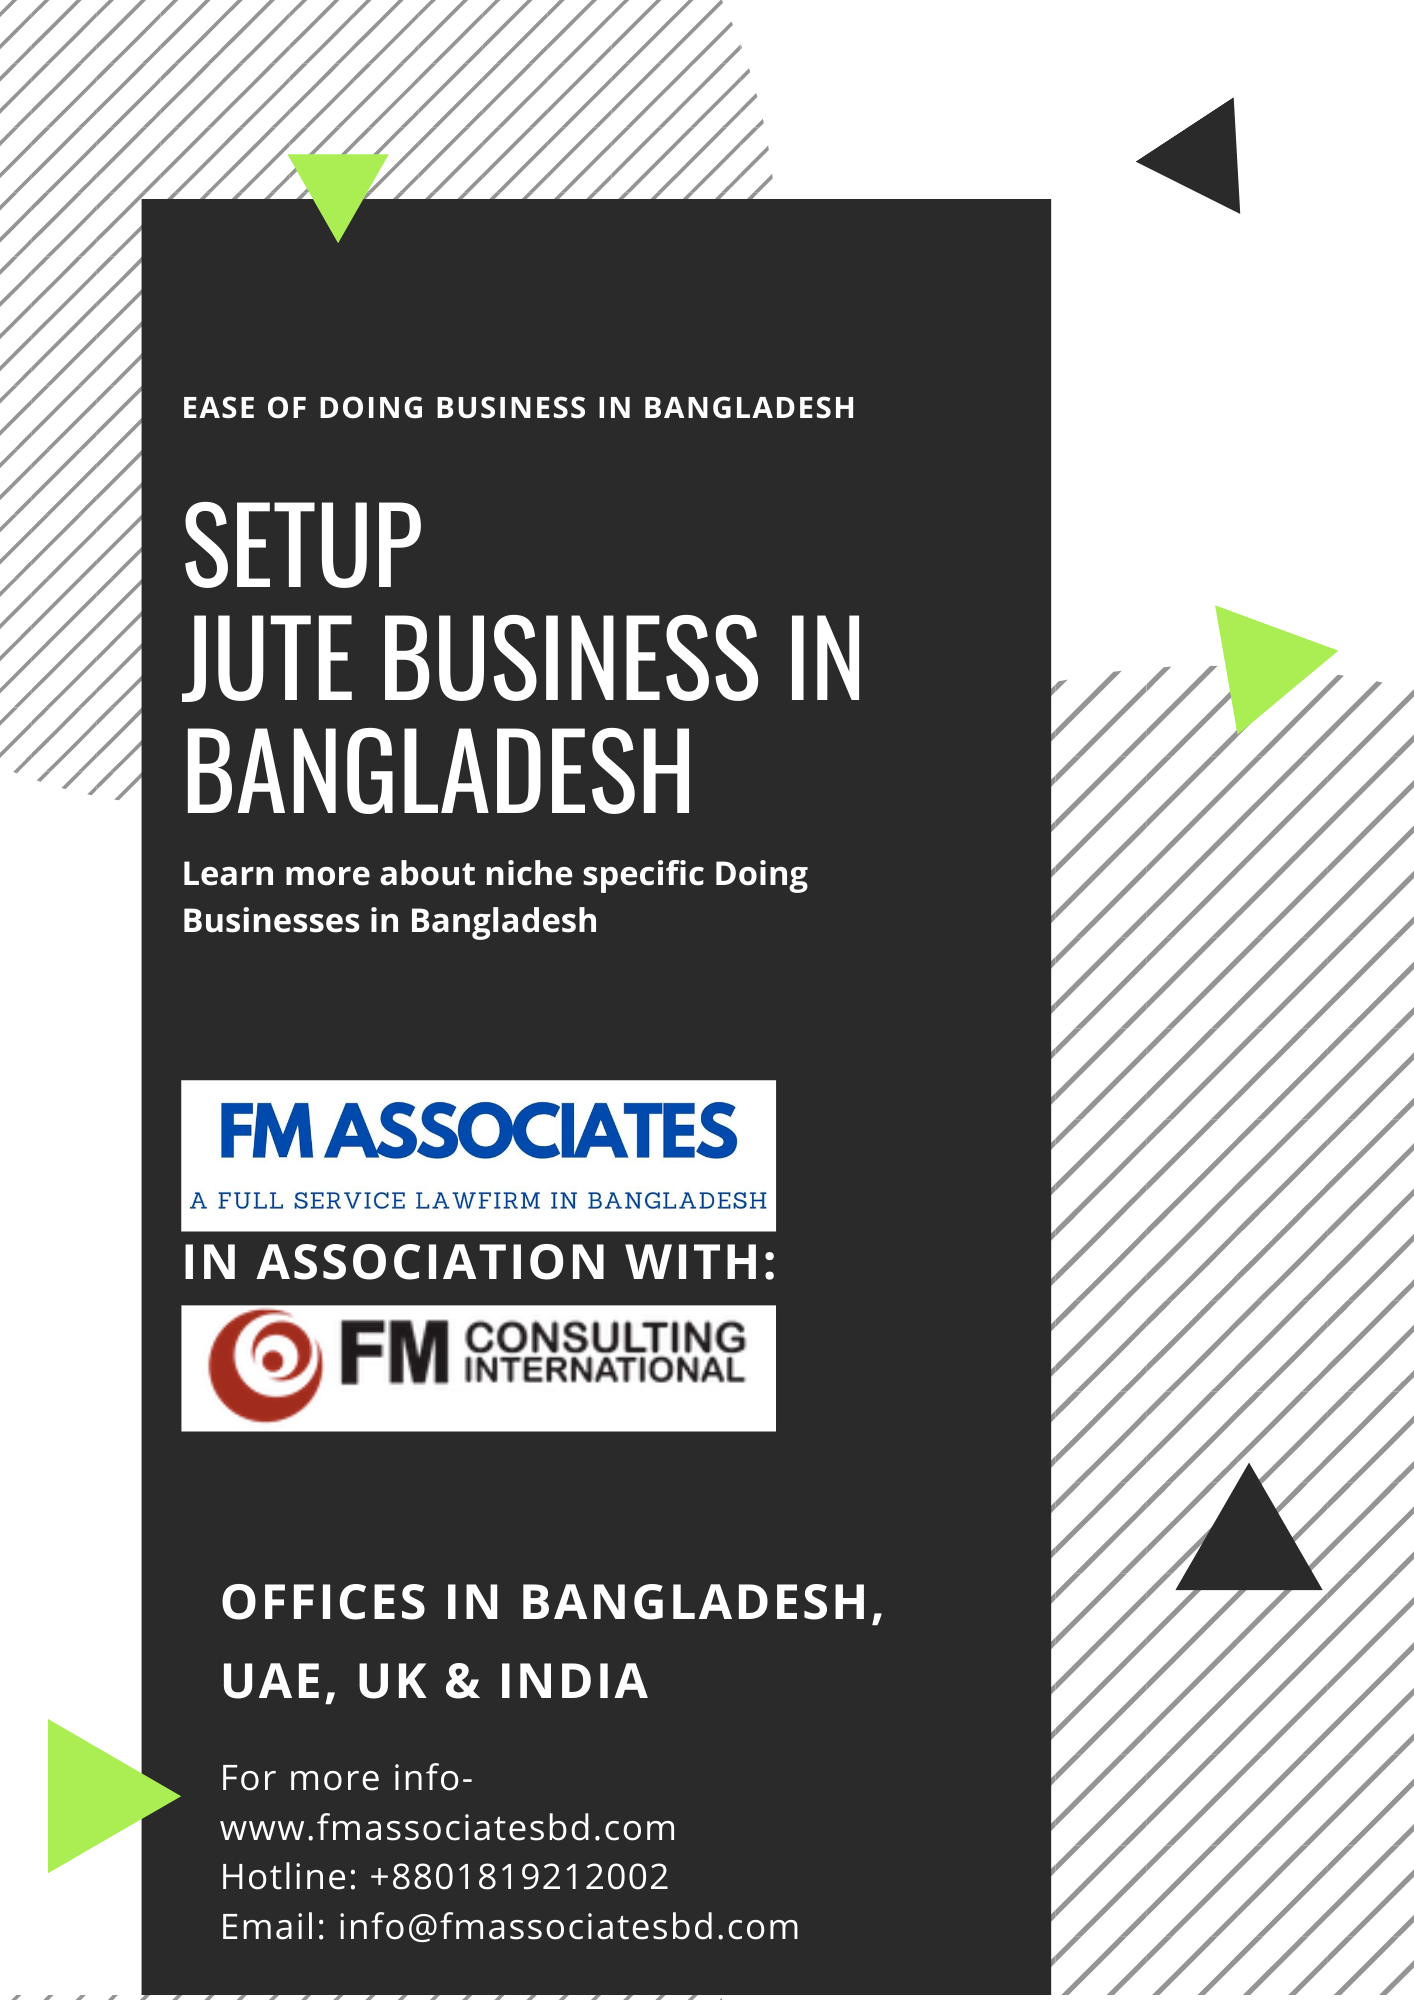 How to Setup Jute Business in Bangladesh